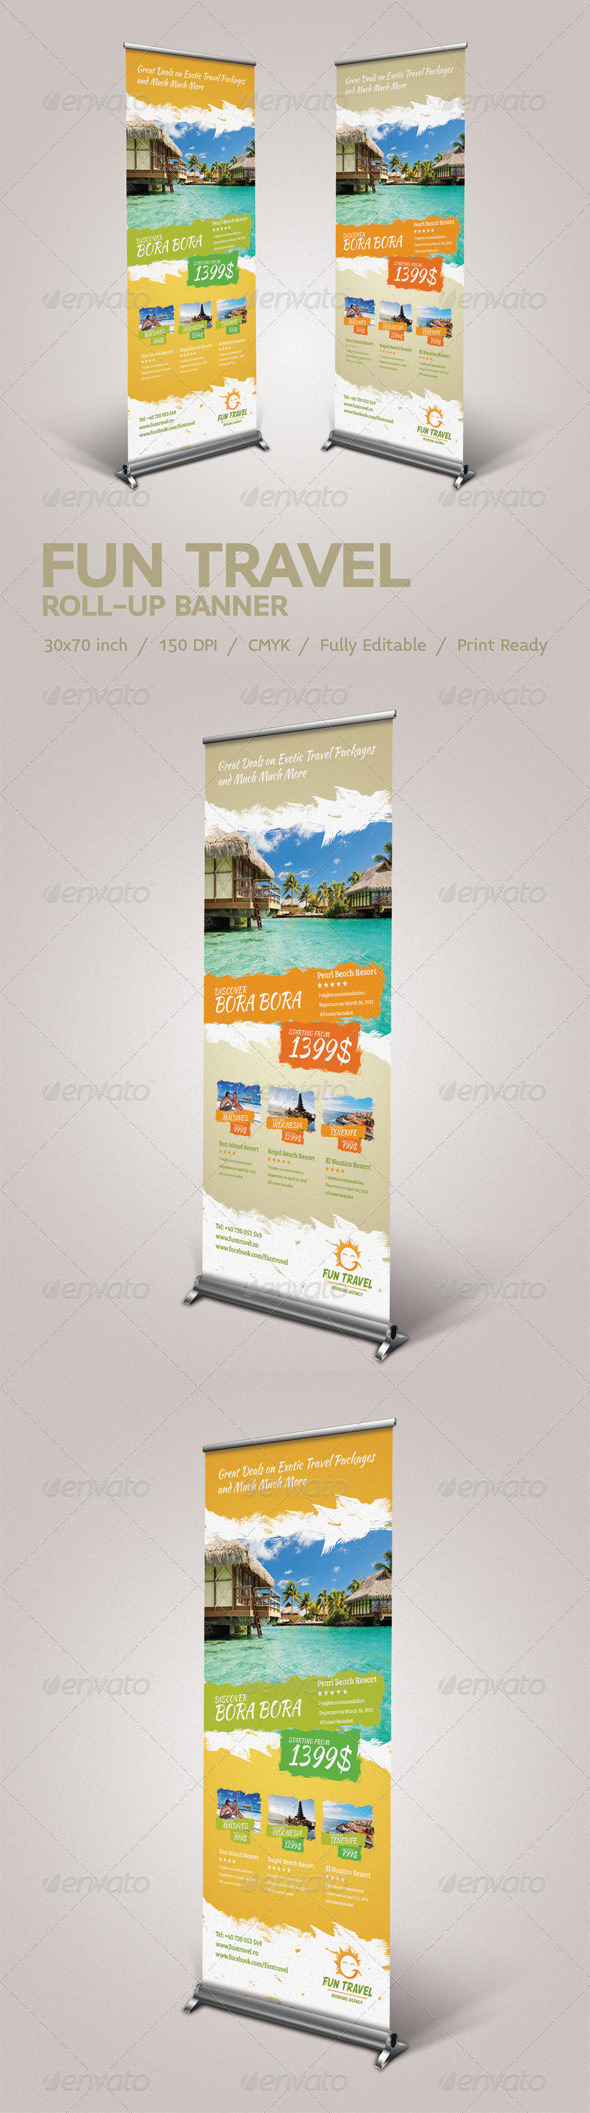 Fun Travel Roll-Up Banner